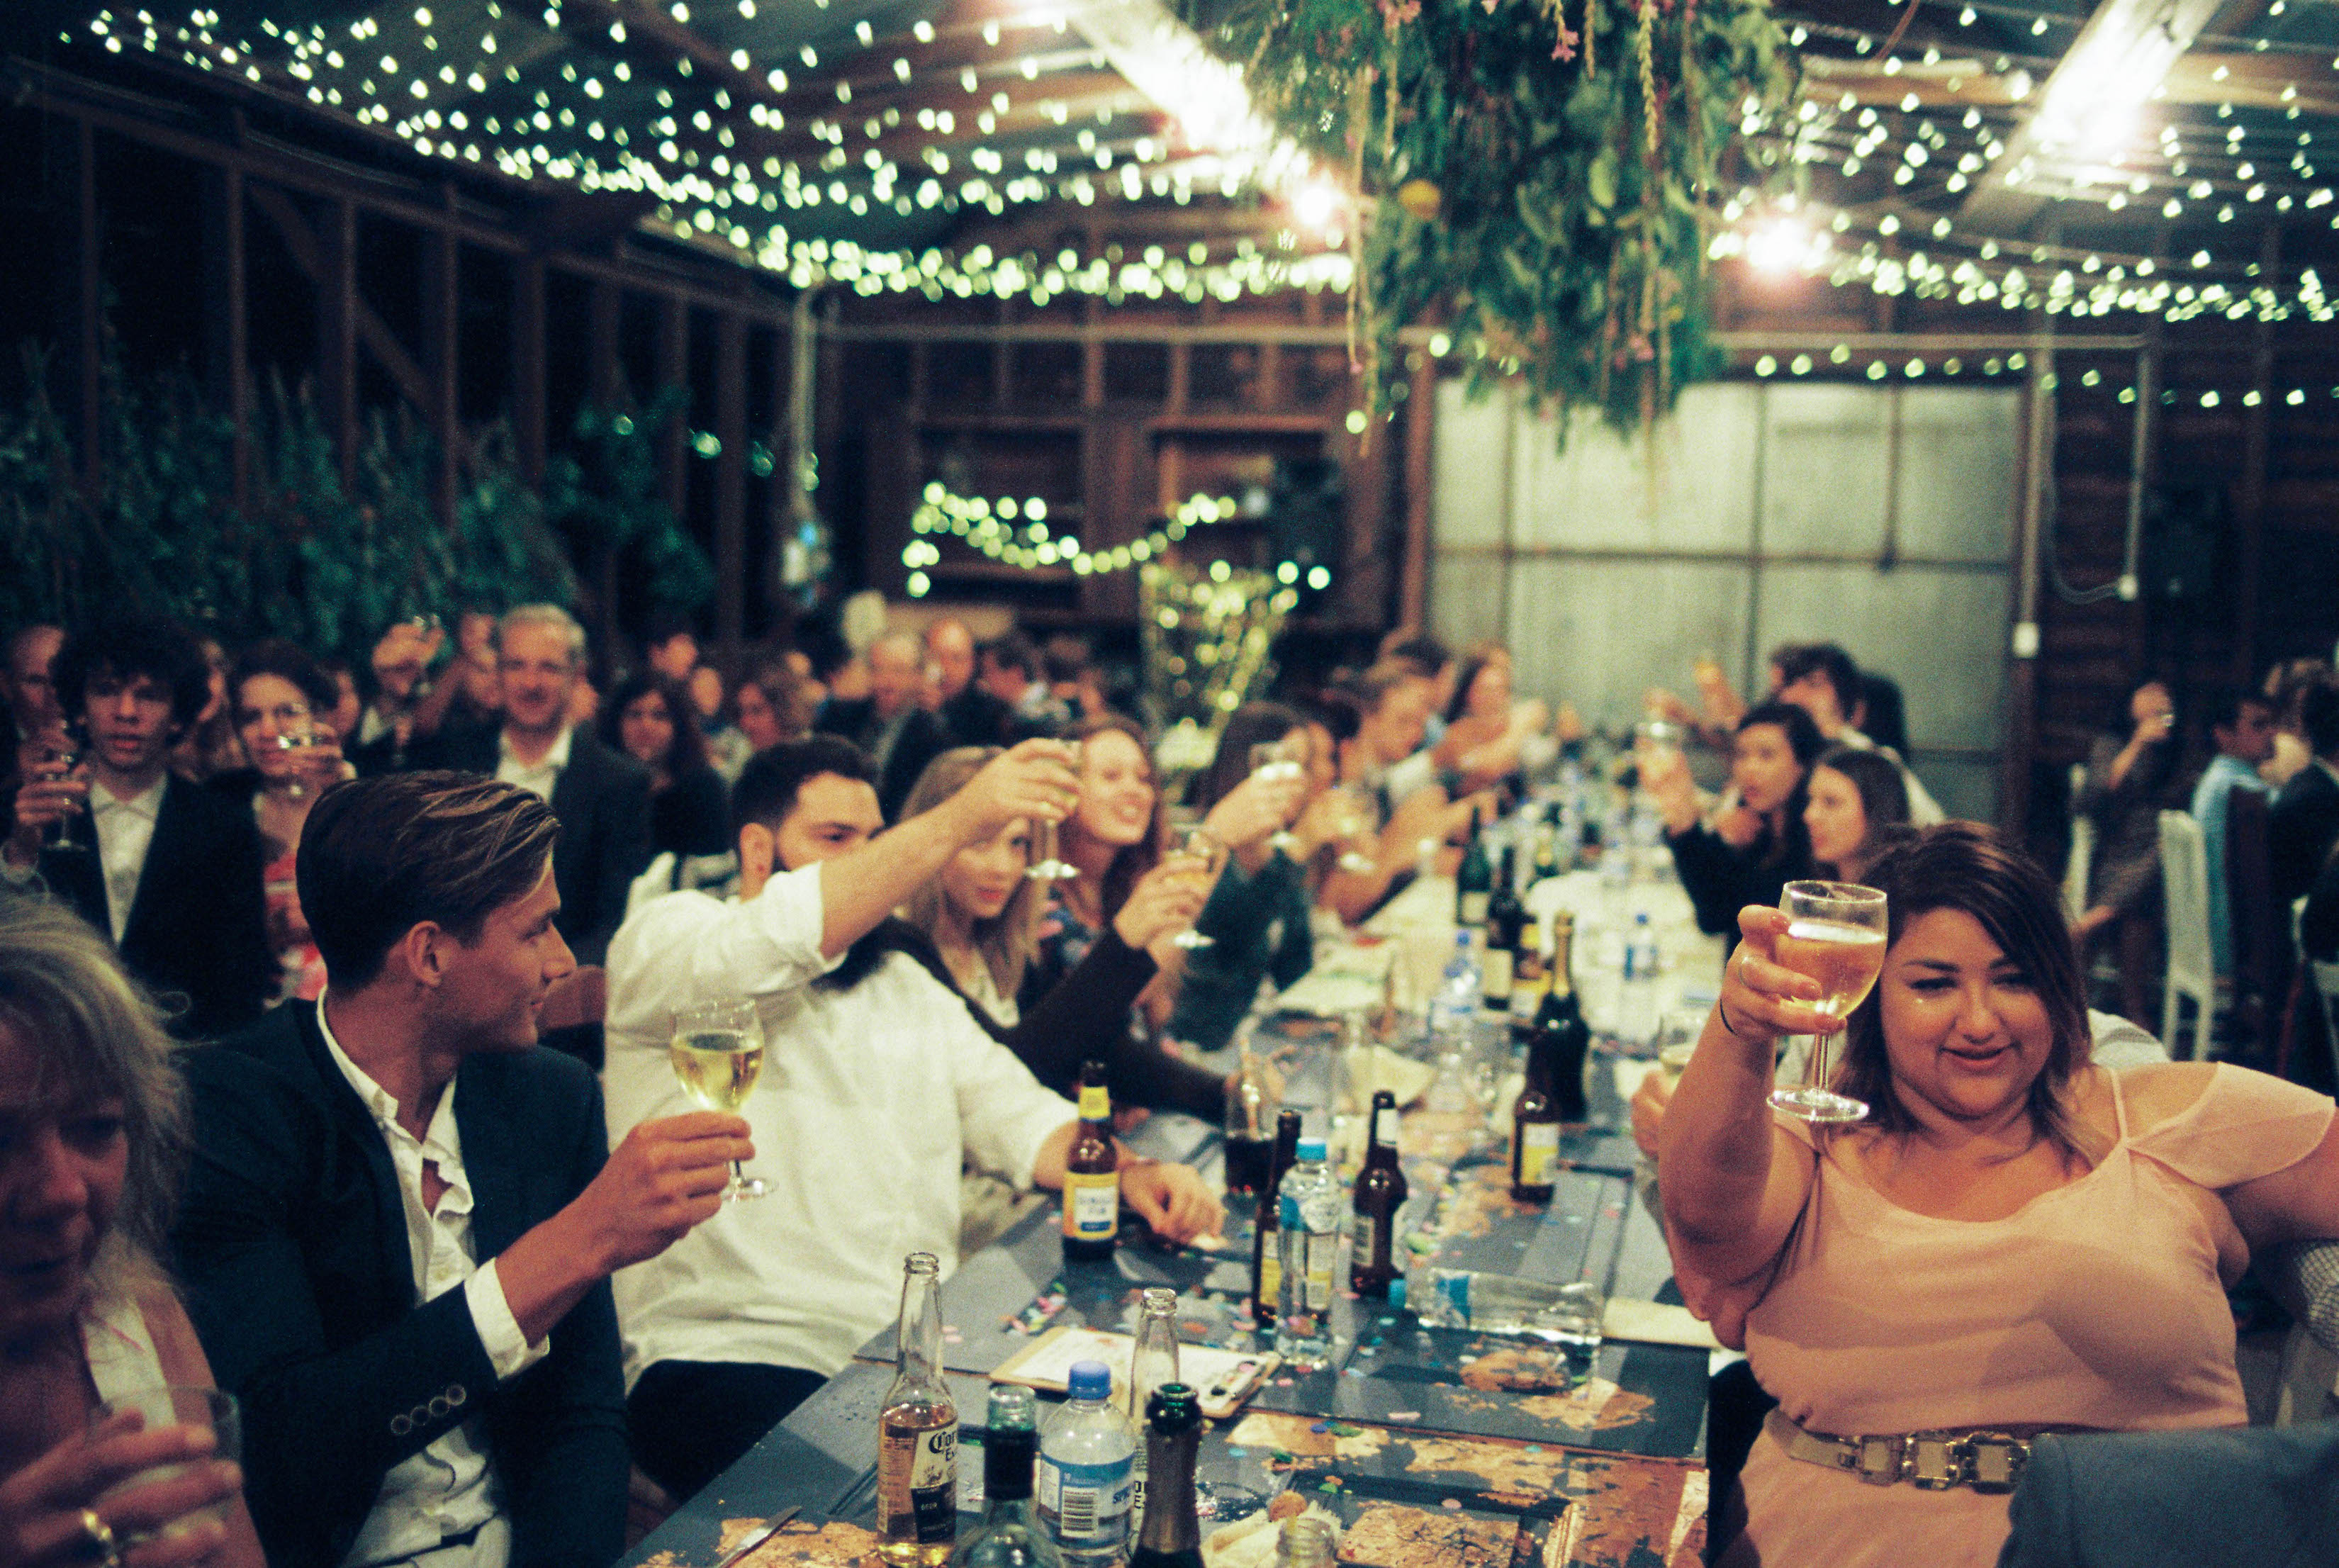 An analogue photo of guests at a long table wedding reception while they 'cheers!'